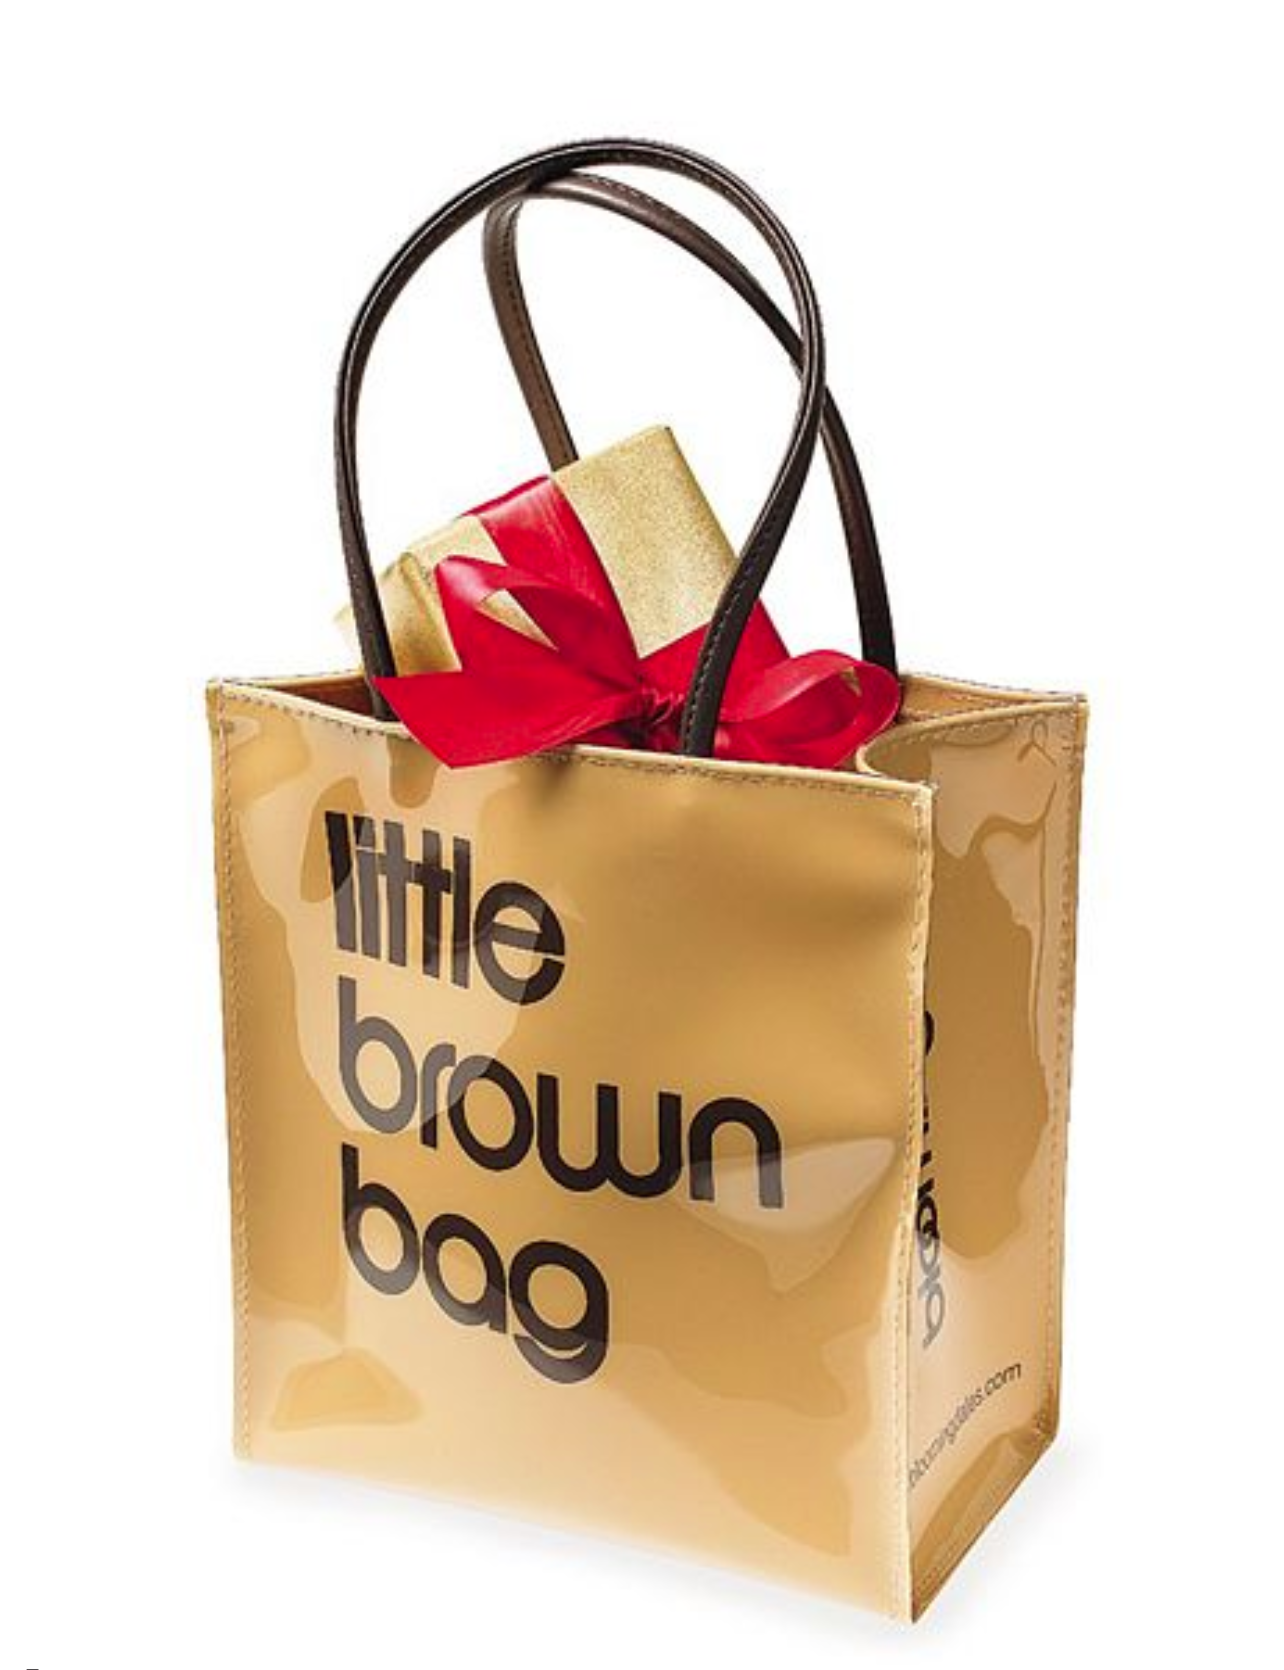 d2c140294a7d Bloomingdale s Little Brown Bag Small Multipurpose Tote  Bloomingdale s   LittleBrownBag  MultiPurposeTote